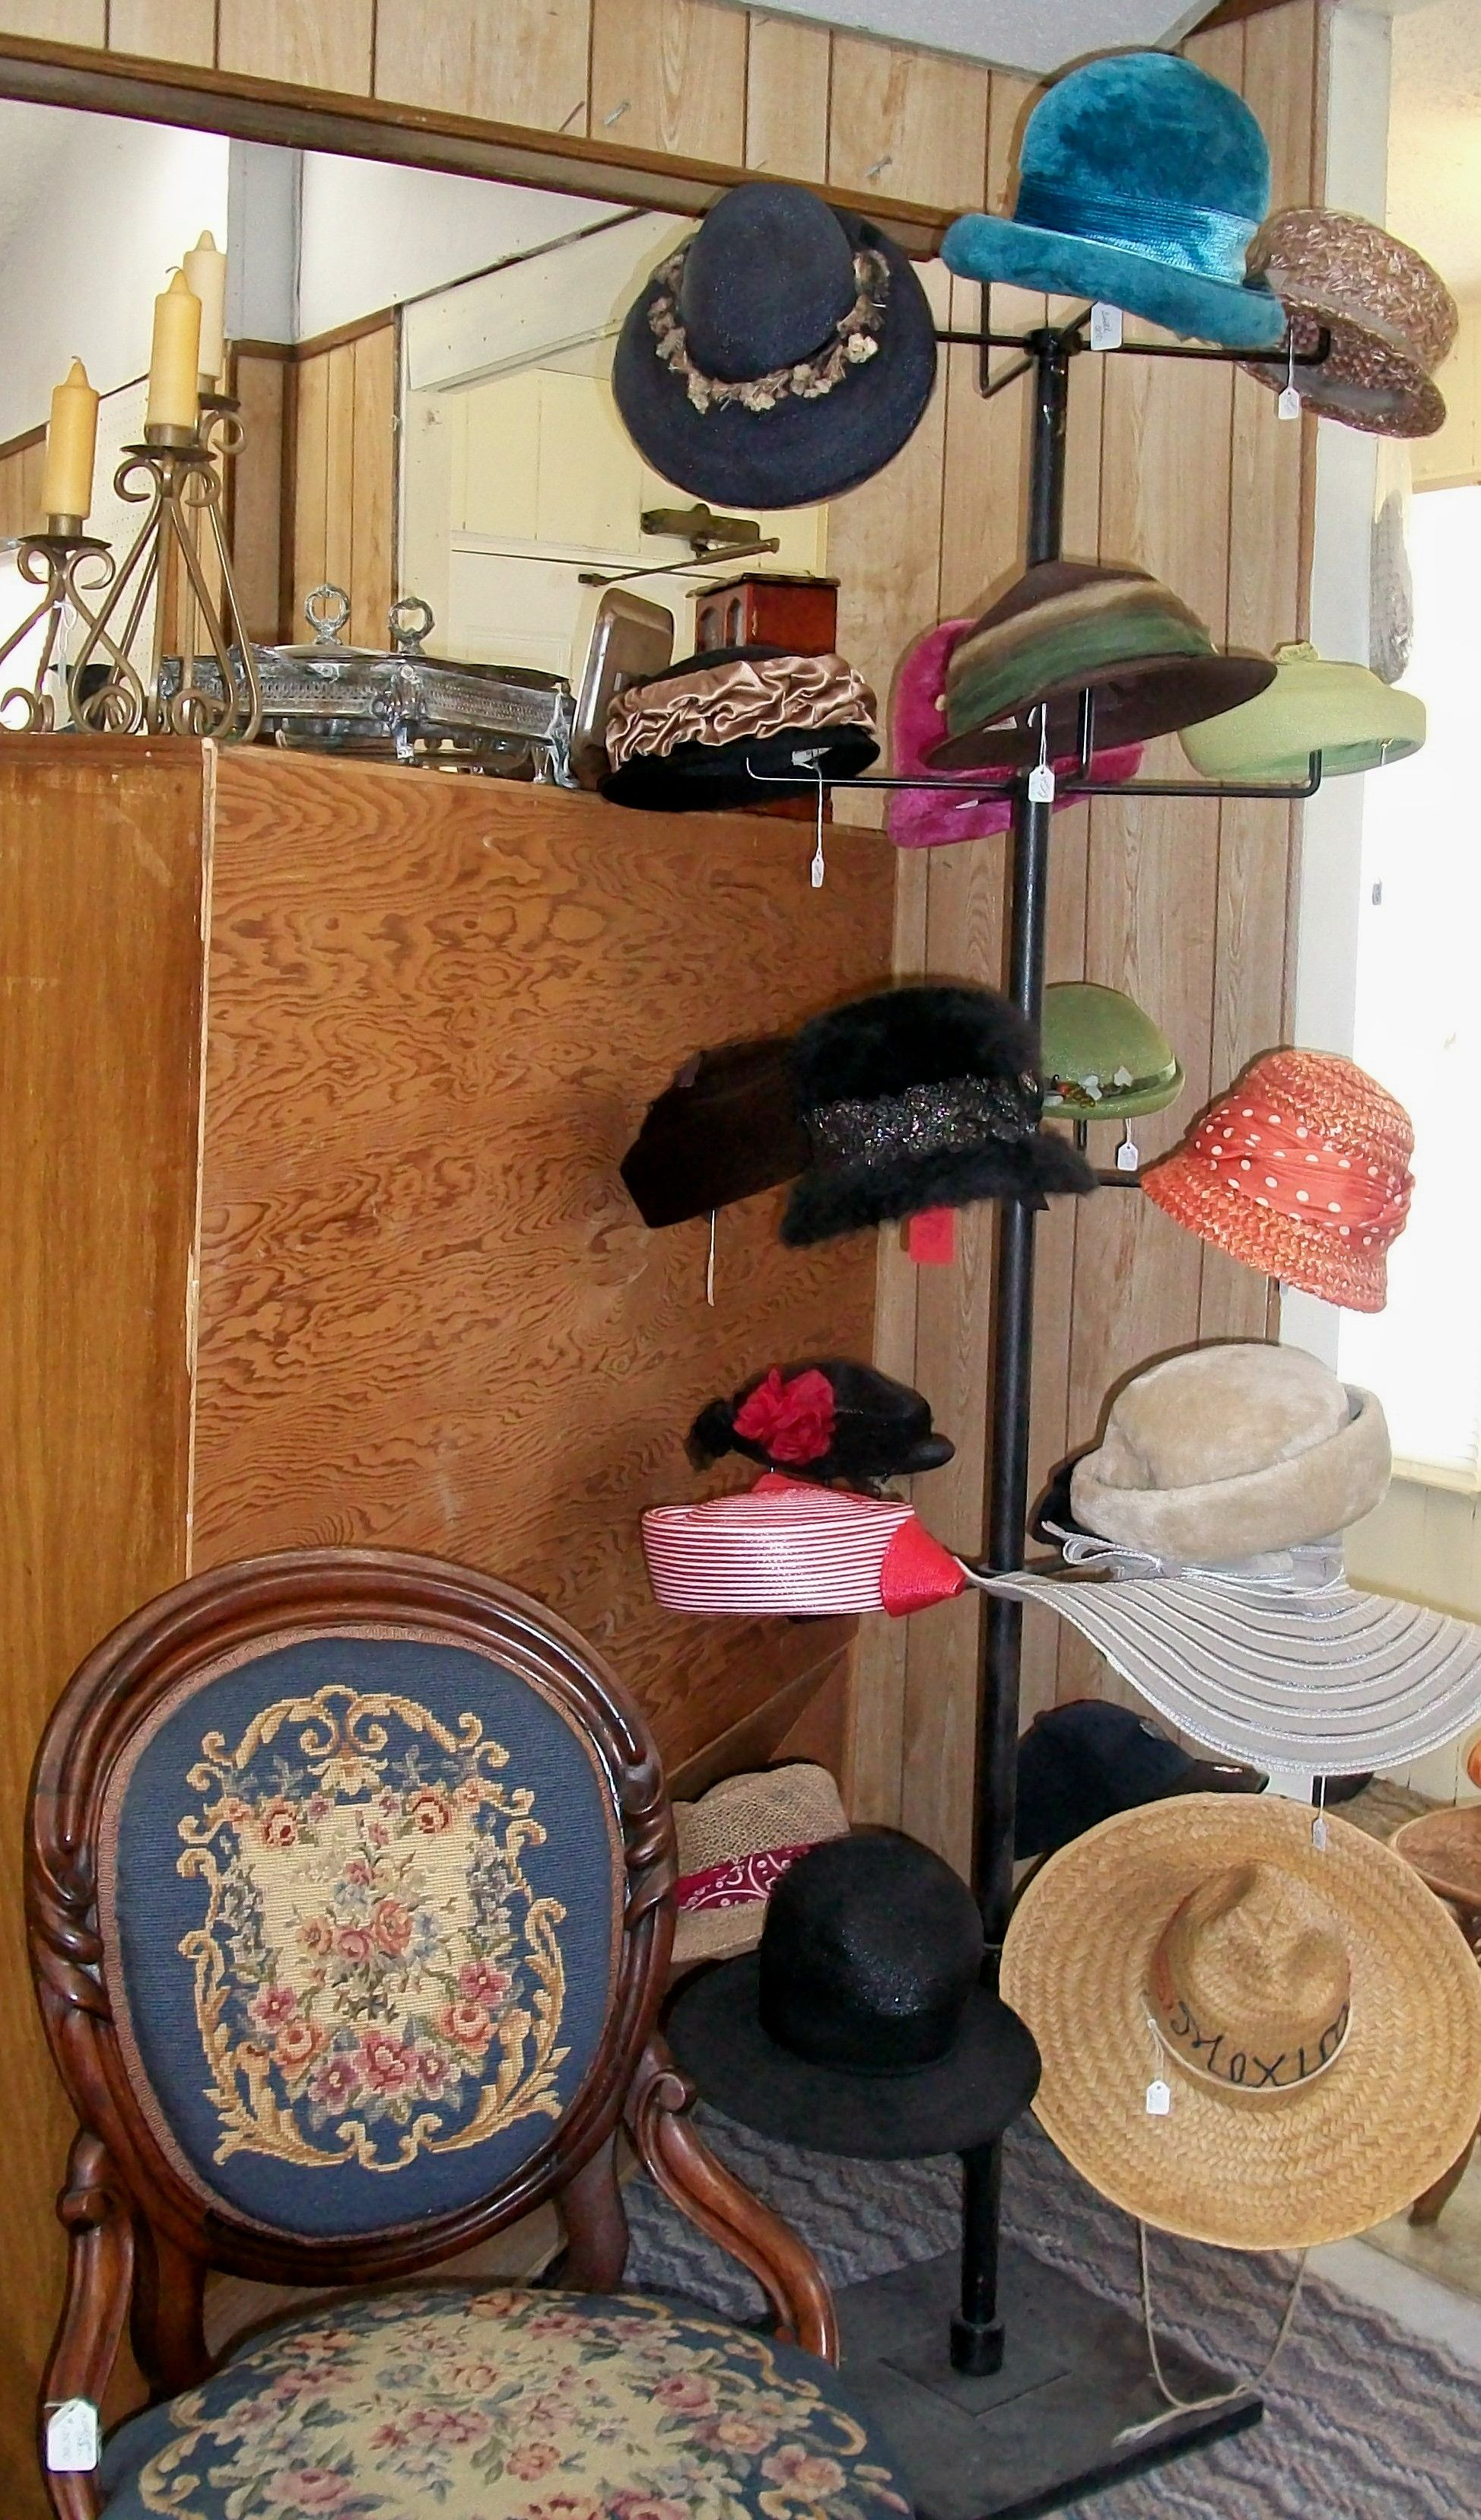 Hats Hats Hats The Mad Hatter Of Blue Hills Antique Mall In Geronimo Texas Just One Of Over 40 Deale Antiques Vintage Collectibles Hats Vintage Hat Stores